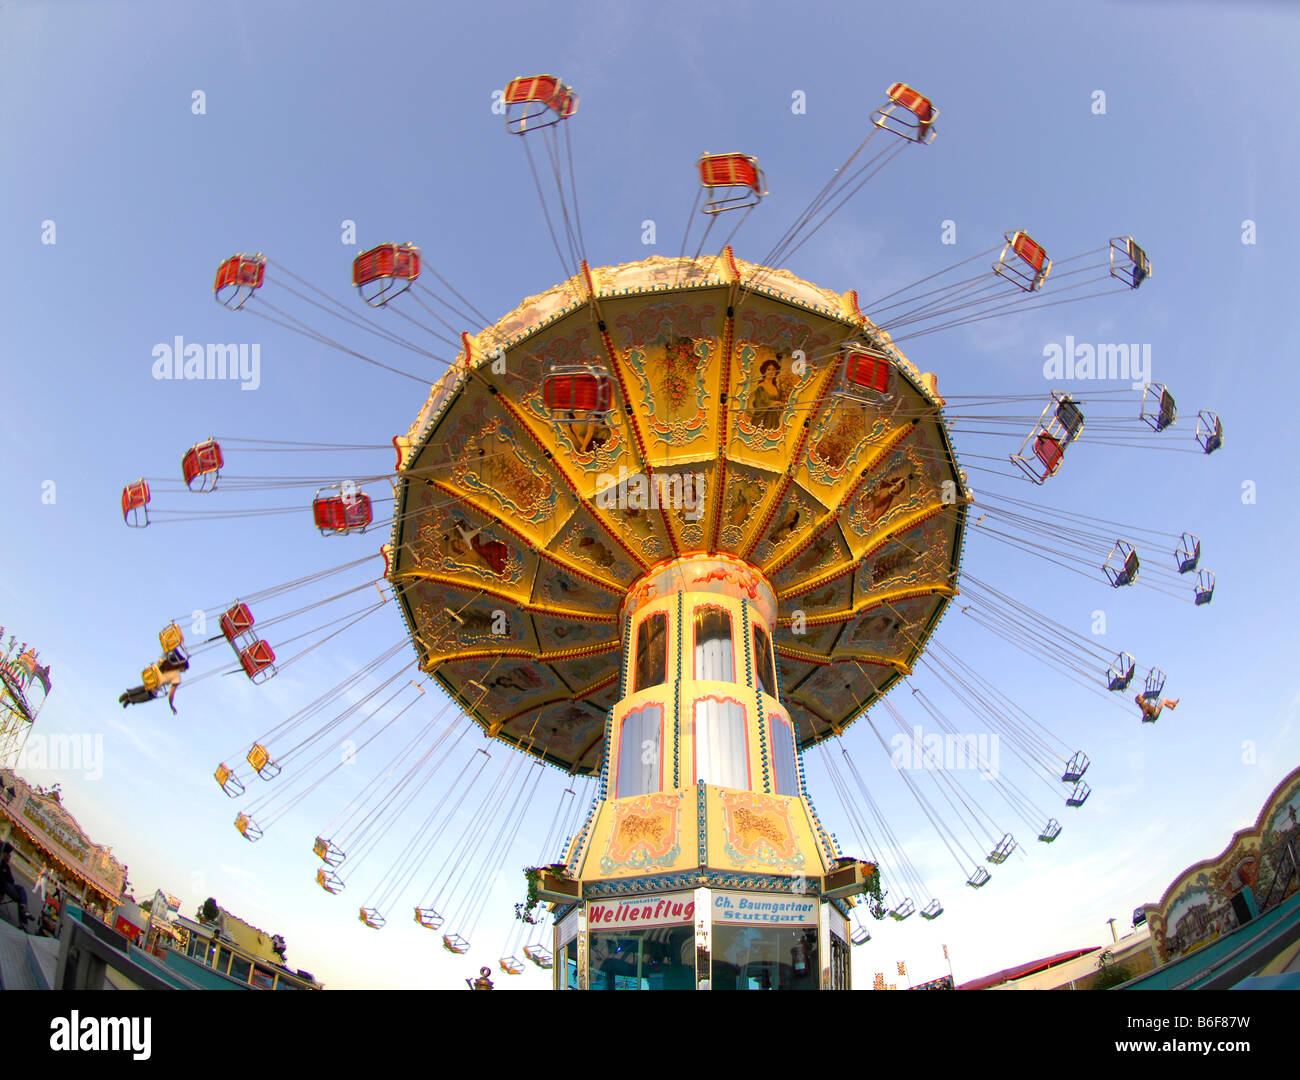 Chairoplane roundabout swing at the Cannstatter Volksfest Fair in Stuttgart, Baden-Wuerttemberg, Germany, Europe Stock Photo